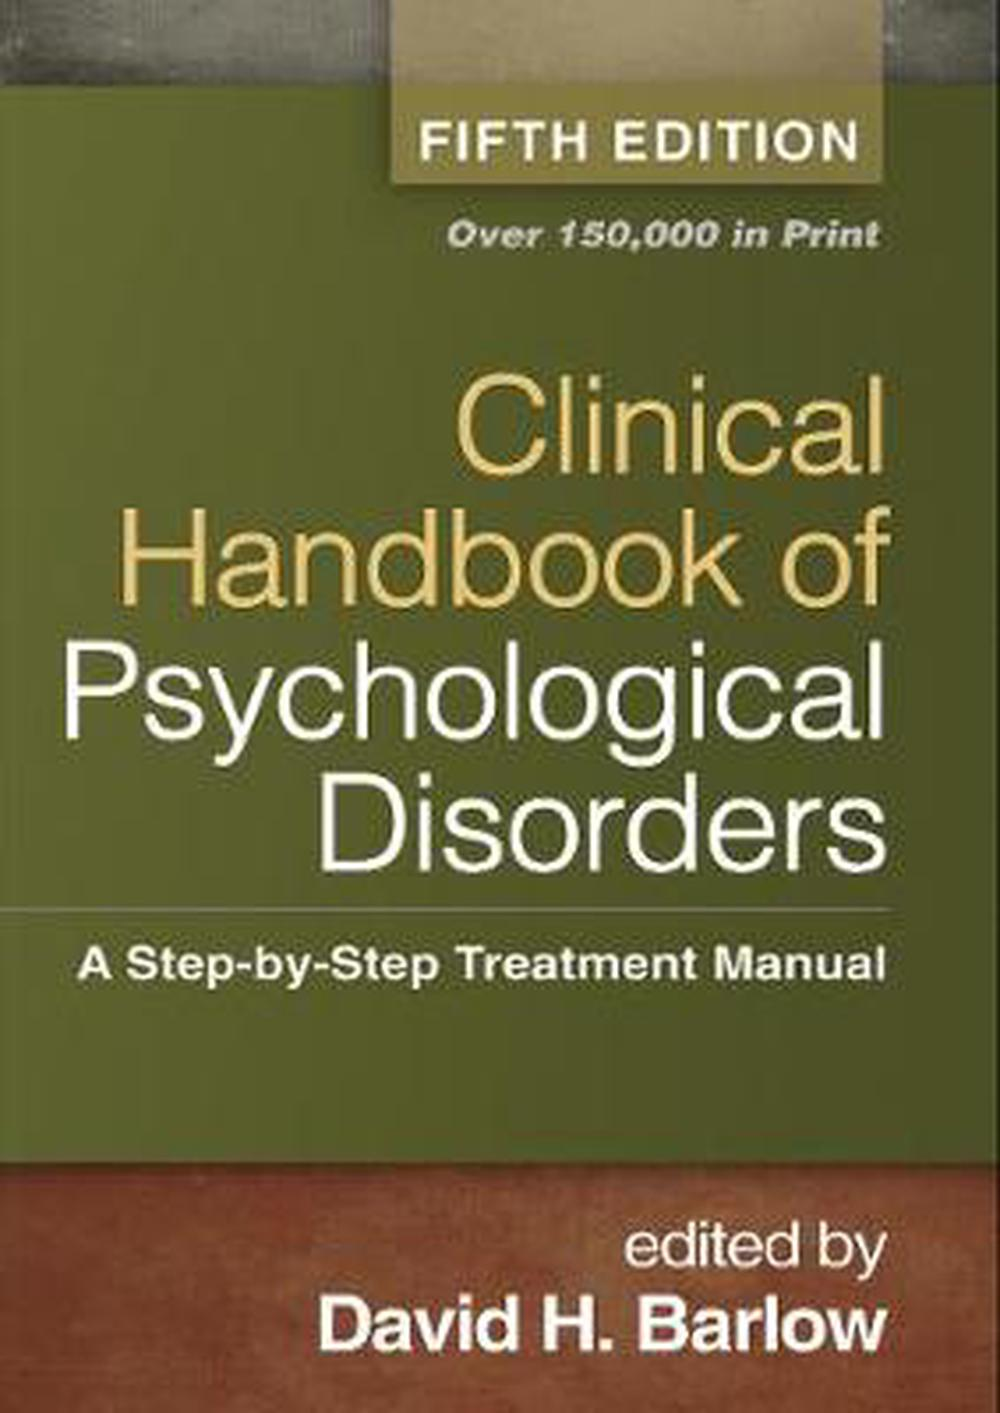 Clinical Handbook of Psychological Disorders: A Step-By-Step Treatment Manual, 5th Edition